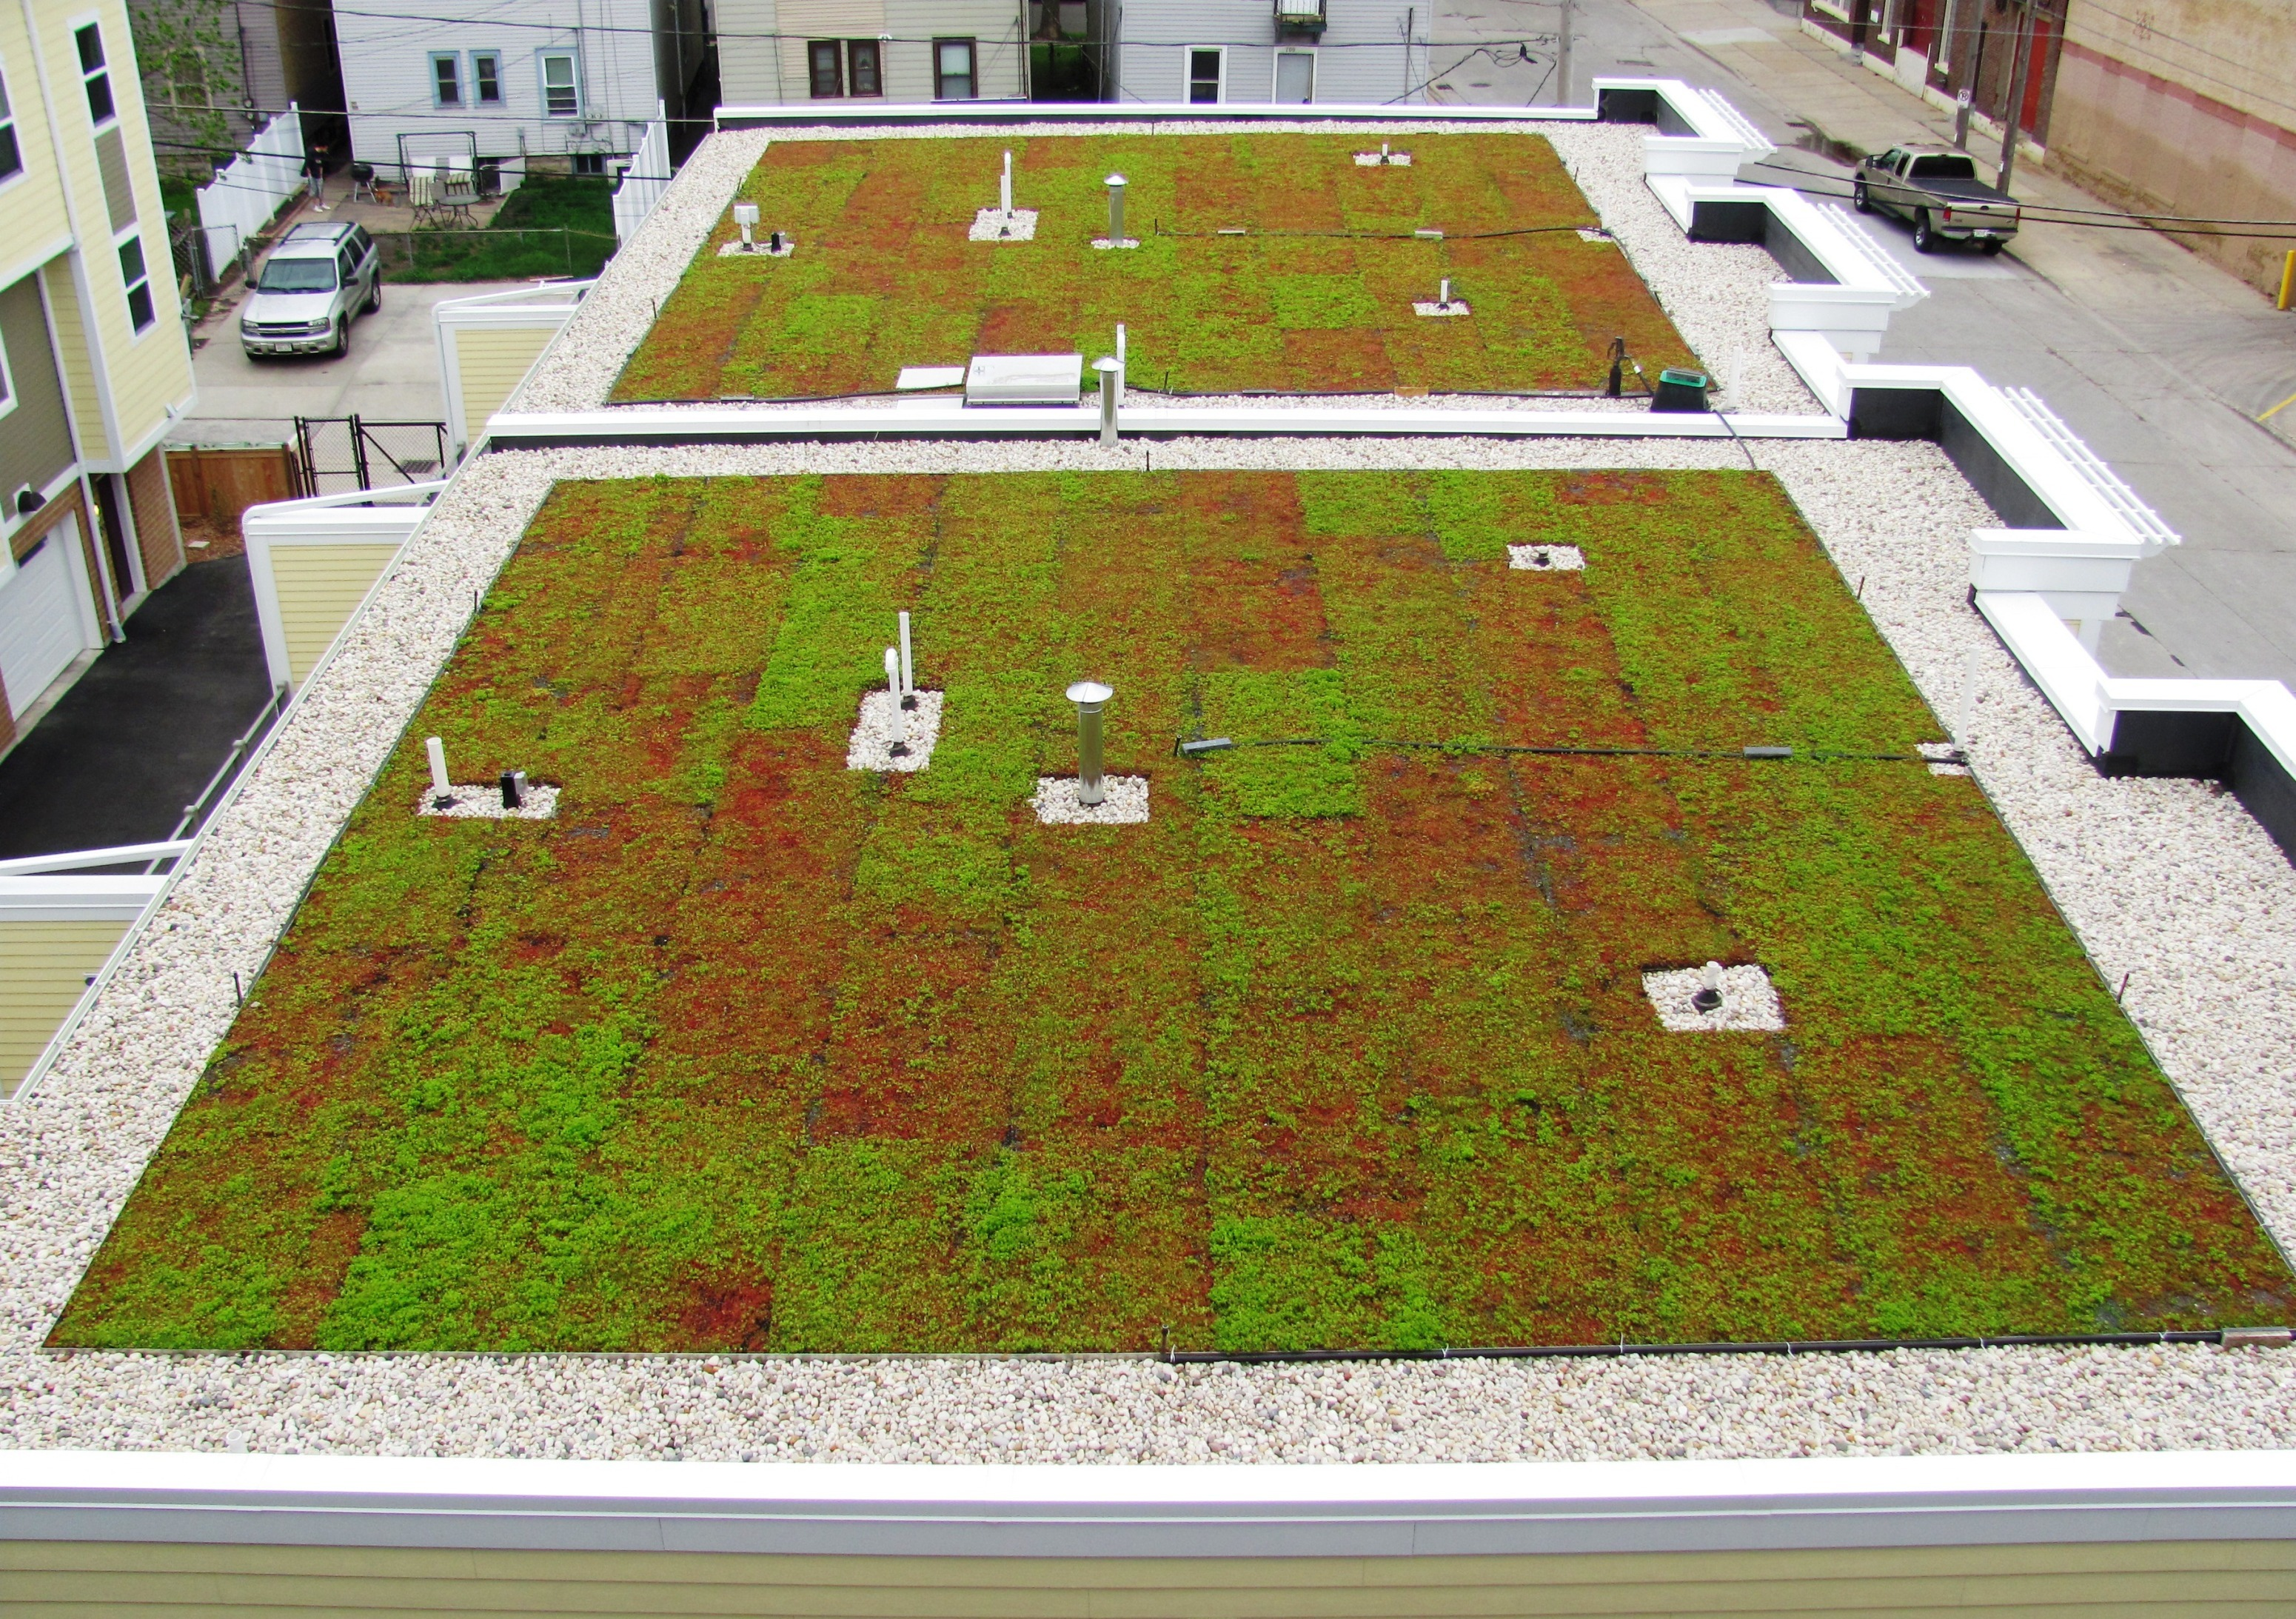 Xero Flor Green Roof System Receives Another Product